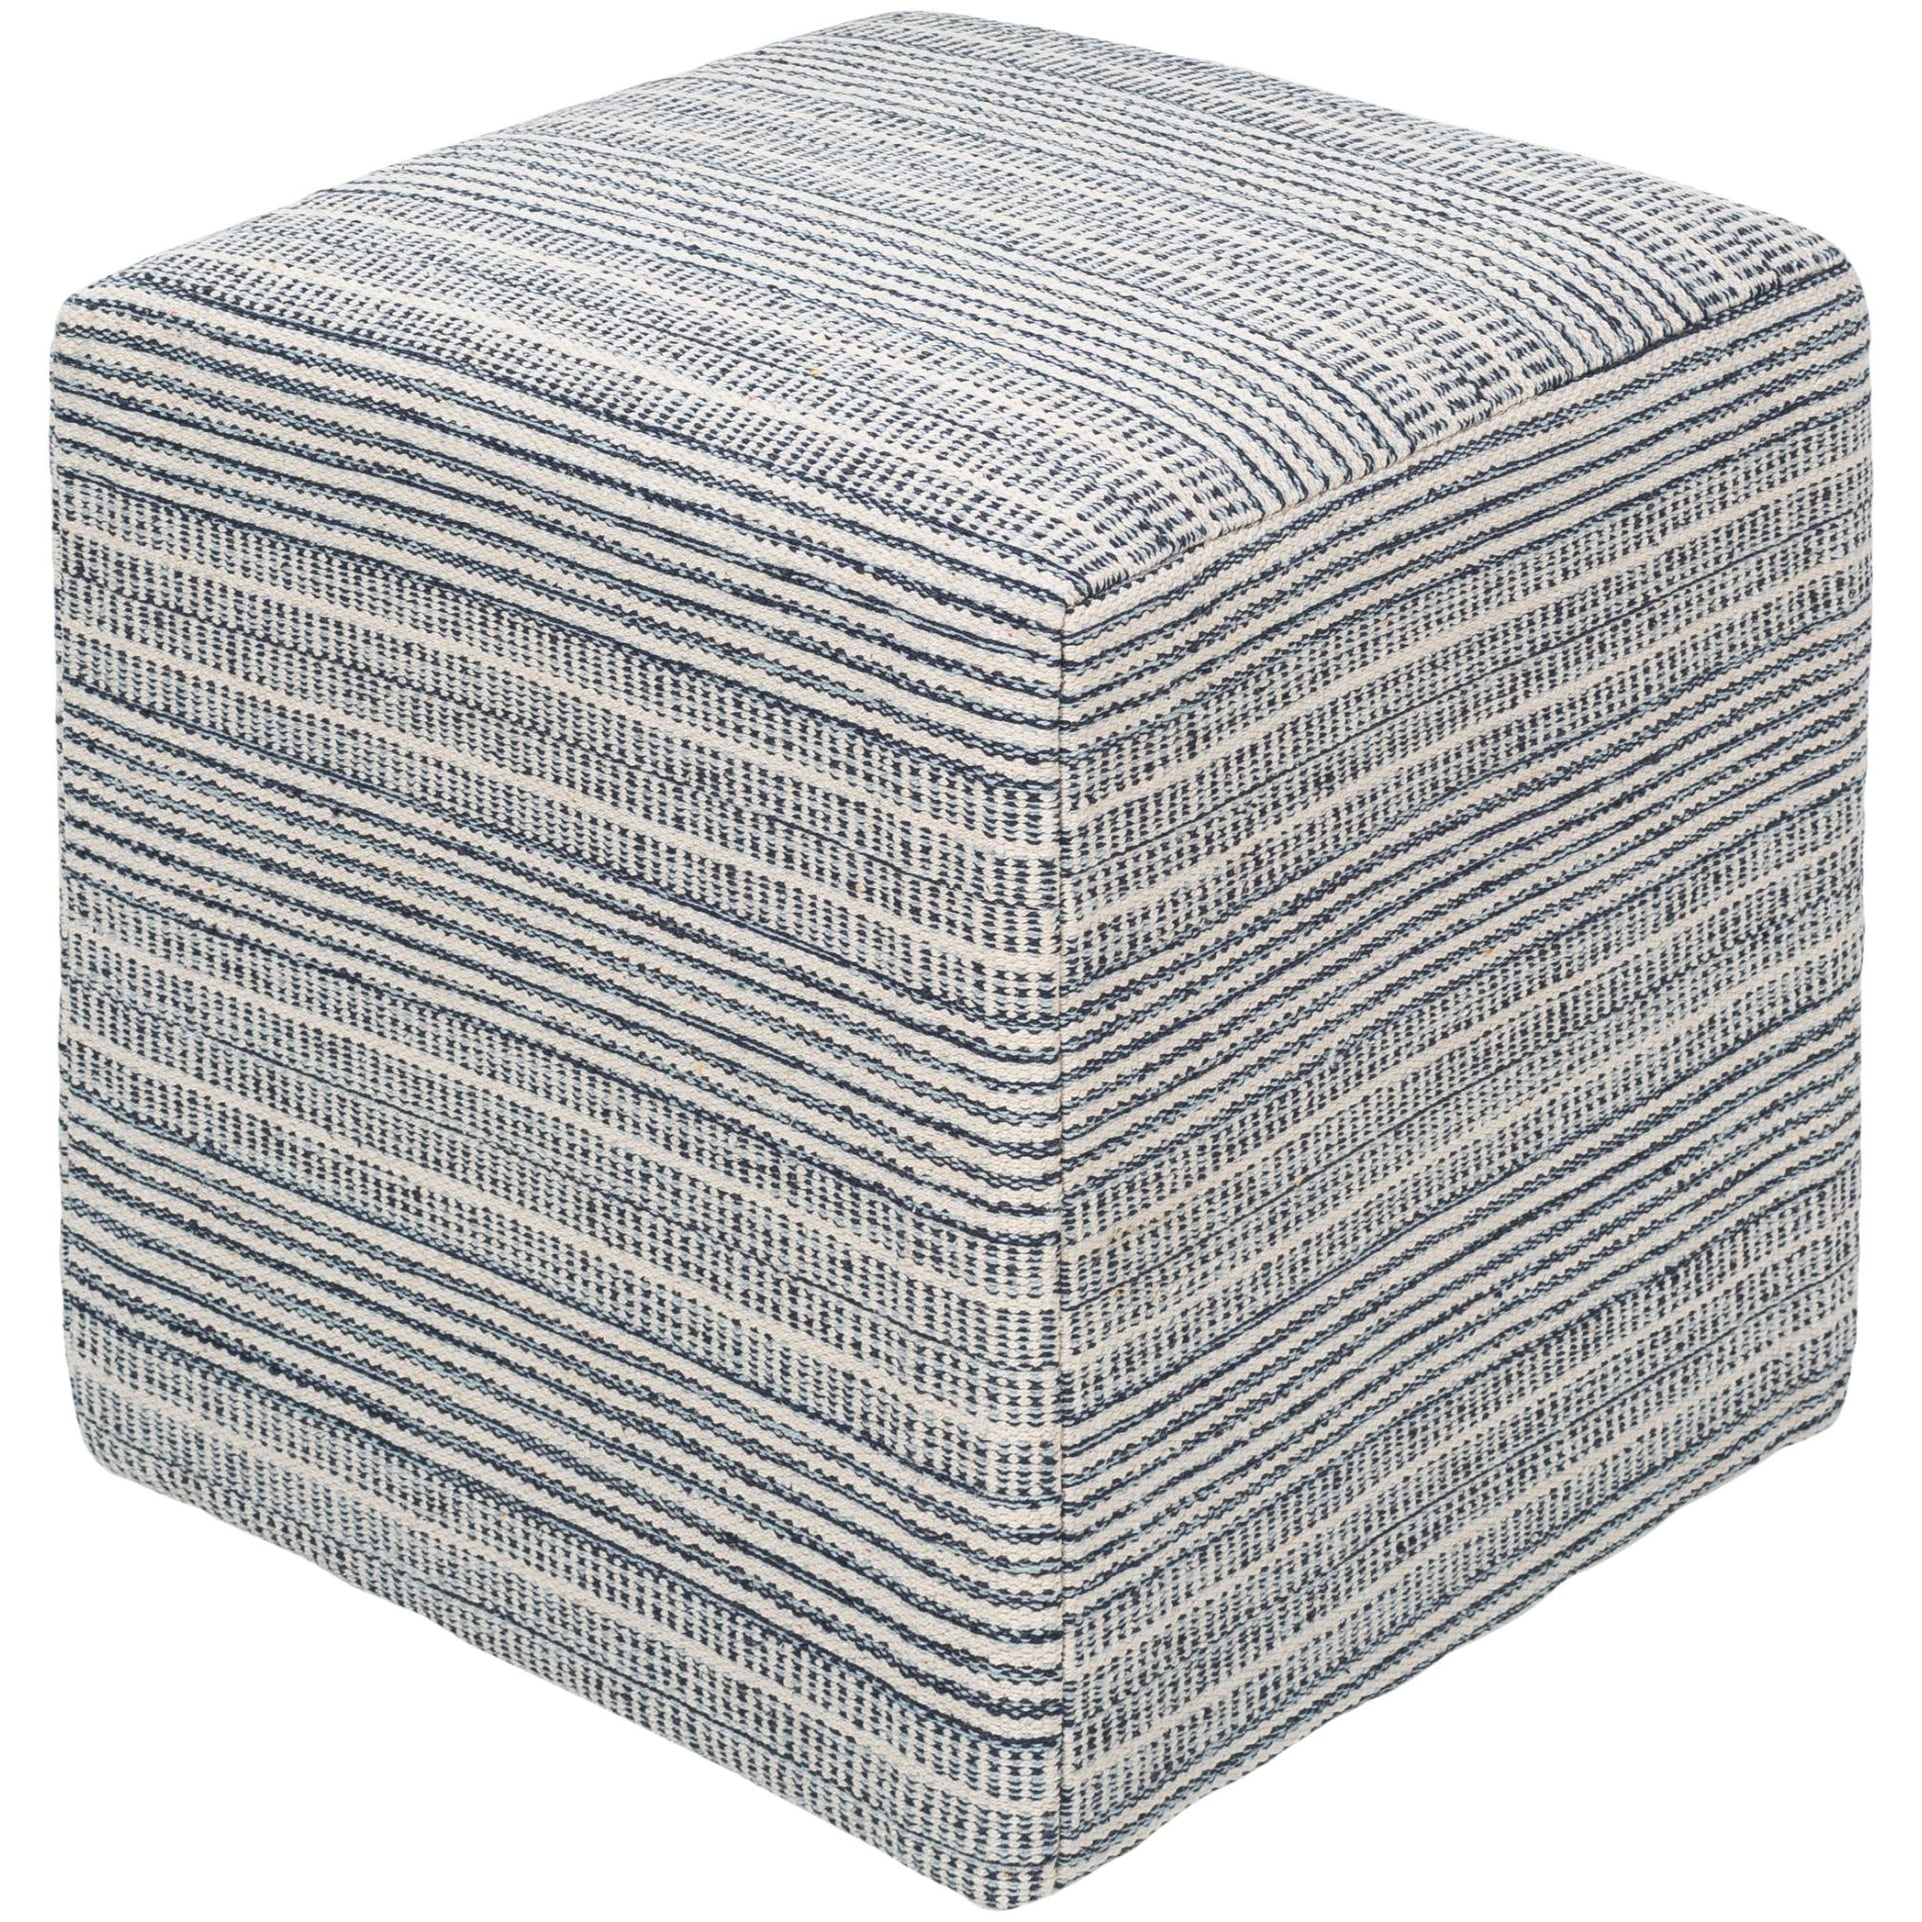 18 Blue And White Striped Square Pouf Ottoman Overstock 28861093